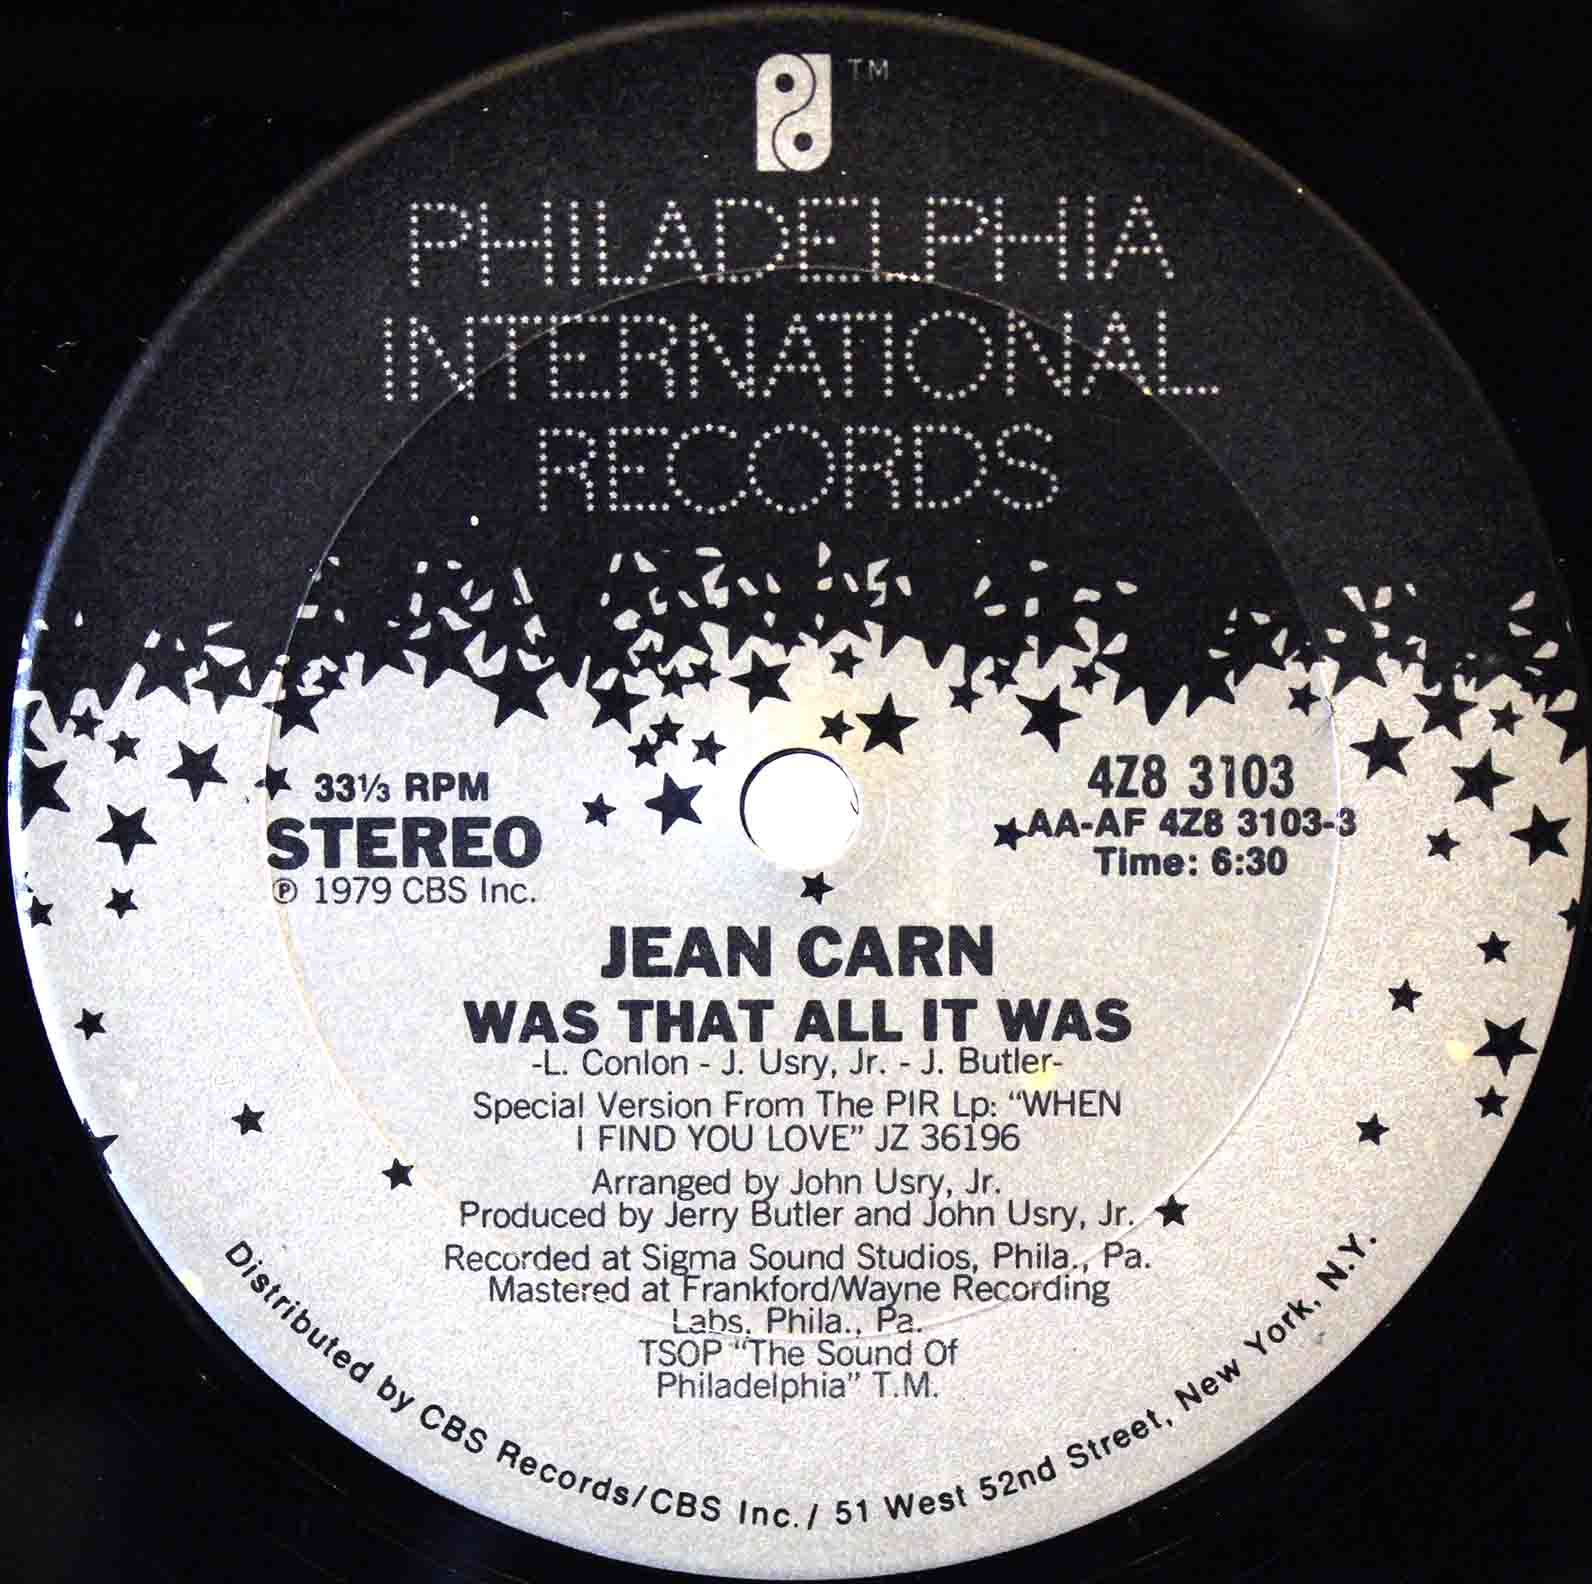 Jean Carn - Was That All It Was 03